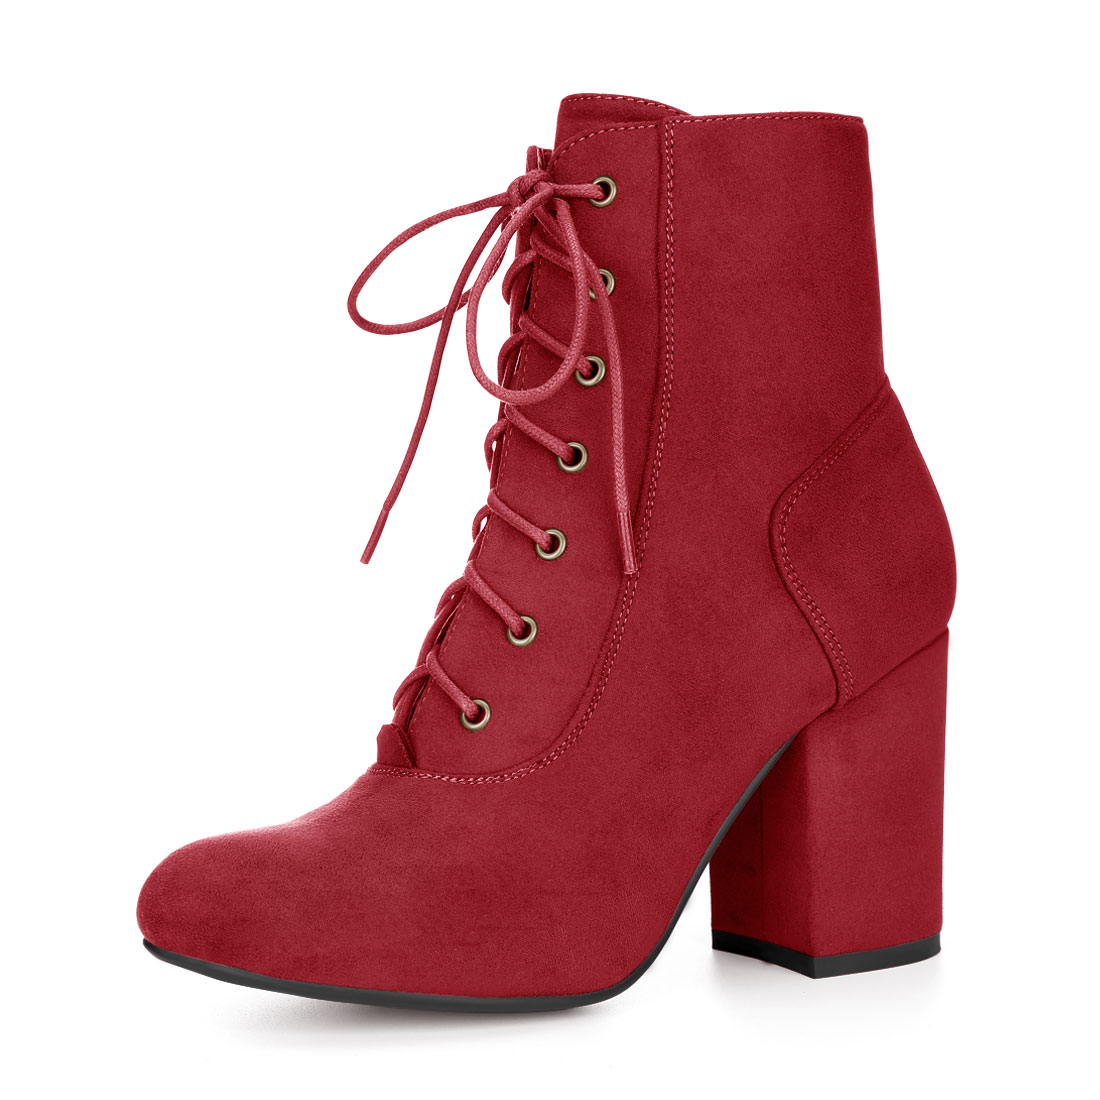 Allegra K Women Round Toe Chunky High Heel Lace Up Booties Red US 10